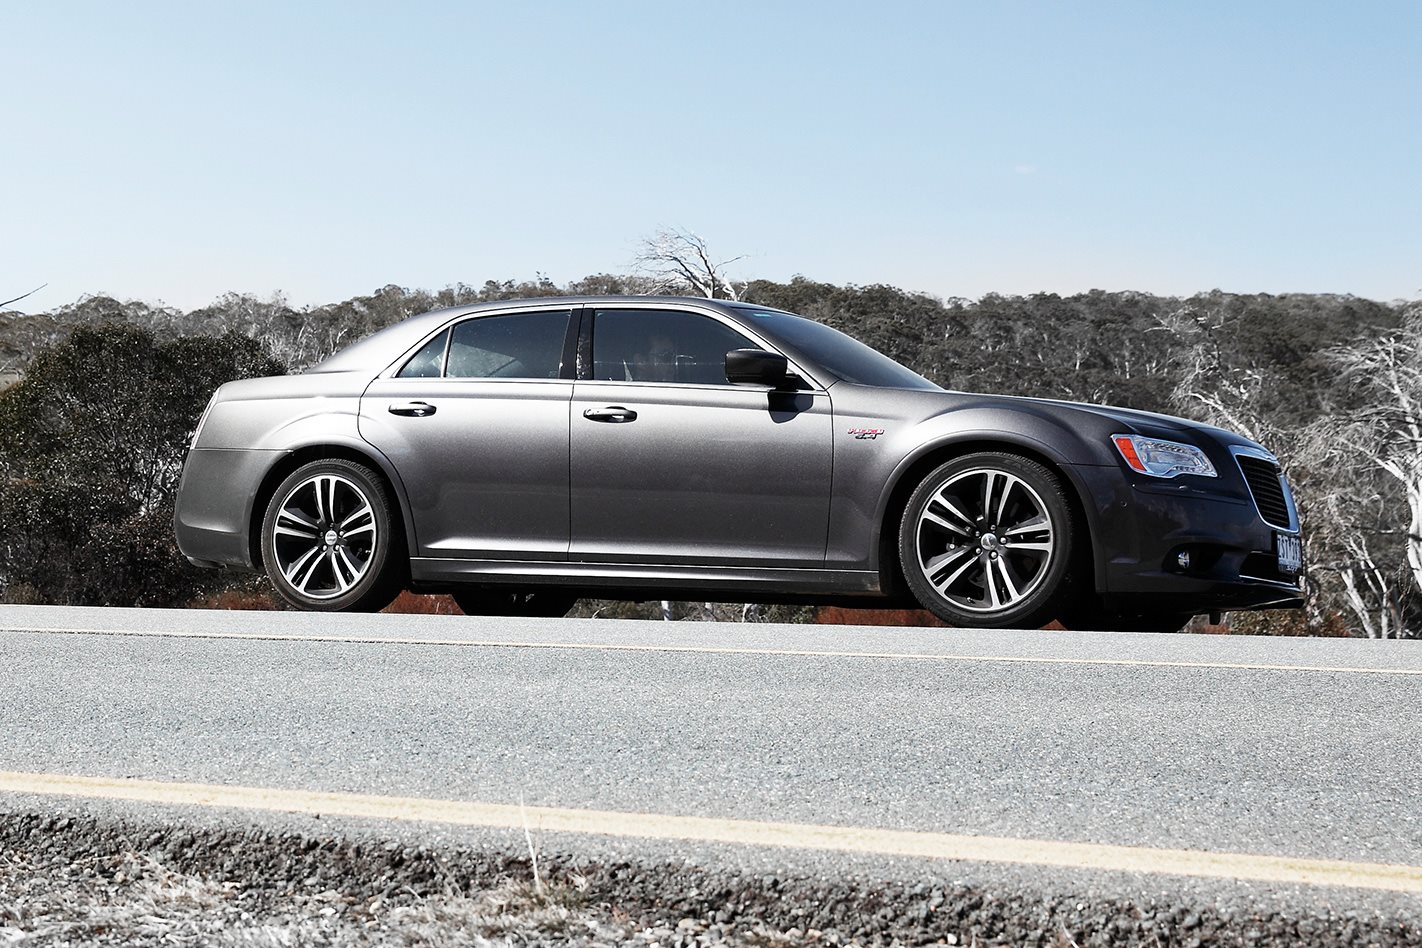 2013 Chrysler 300 SRT8 Core side